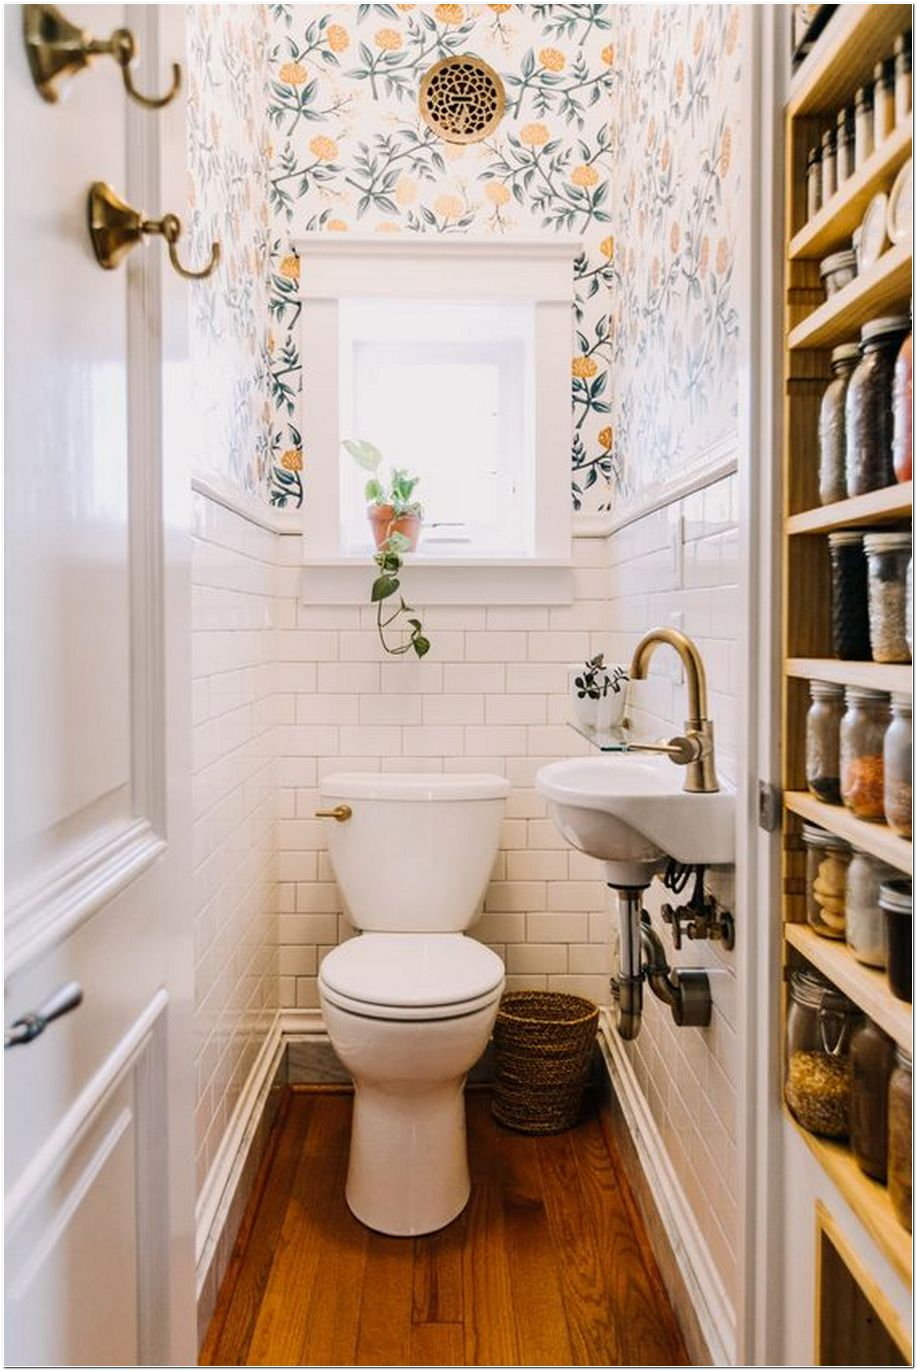 65+ A Newly Remodeled, Maximalist Philadelphia Home